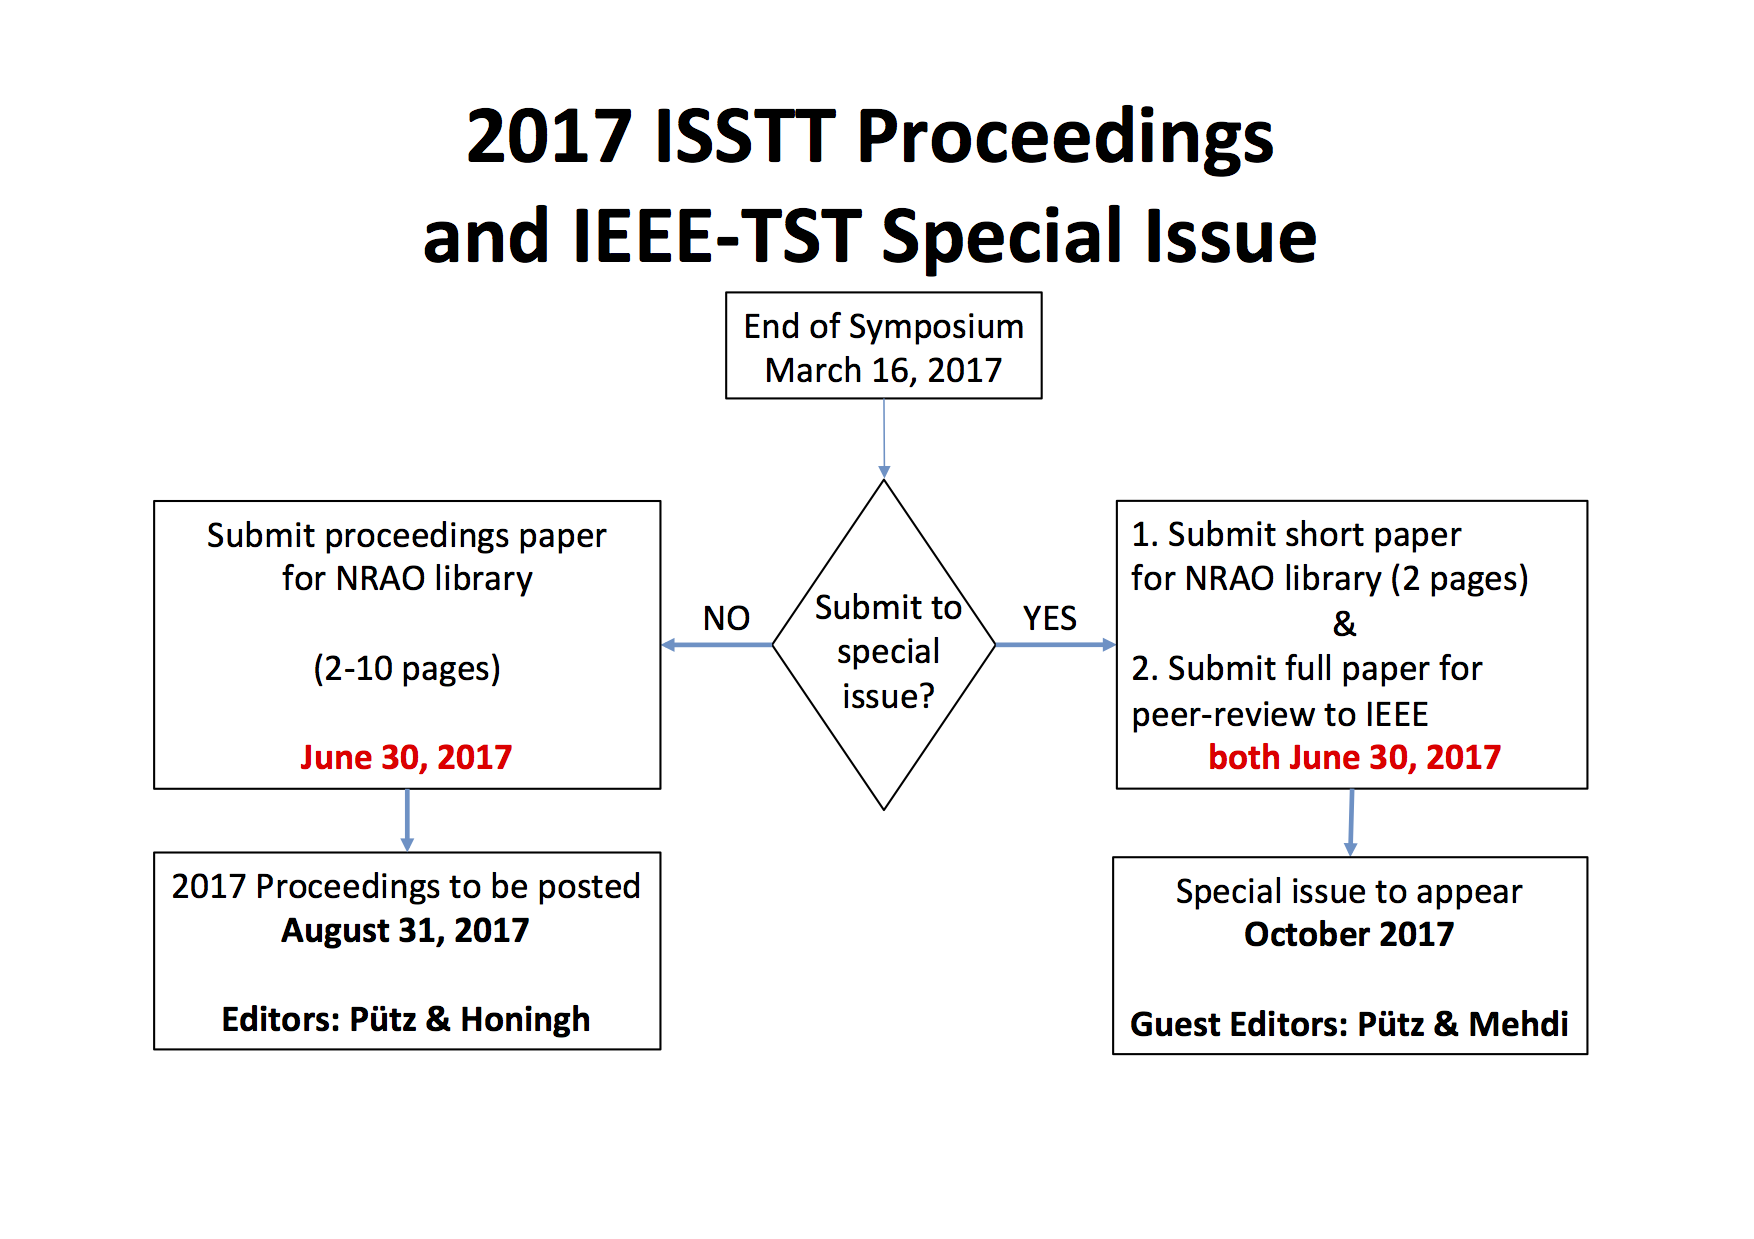 isstt  submission of full paper to peer review for ieee tst